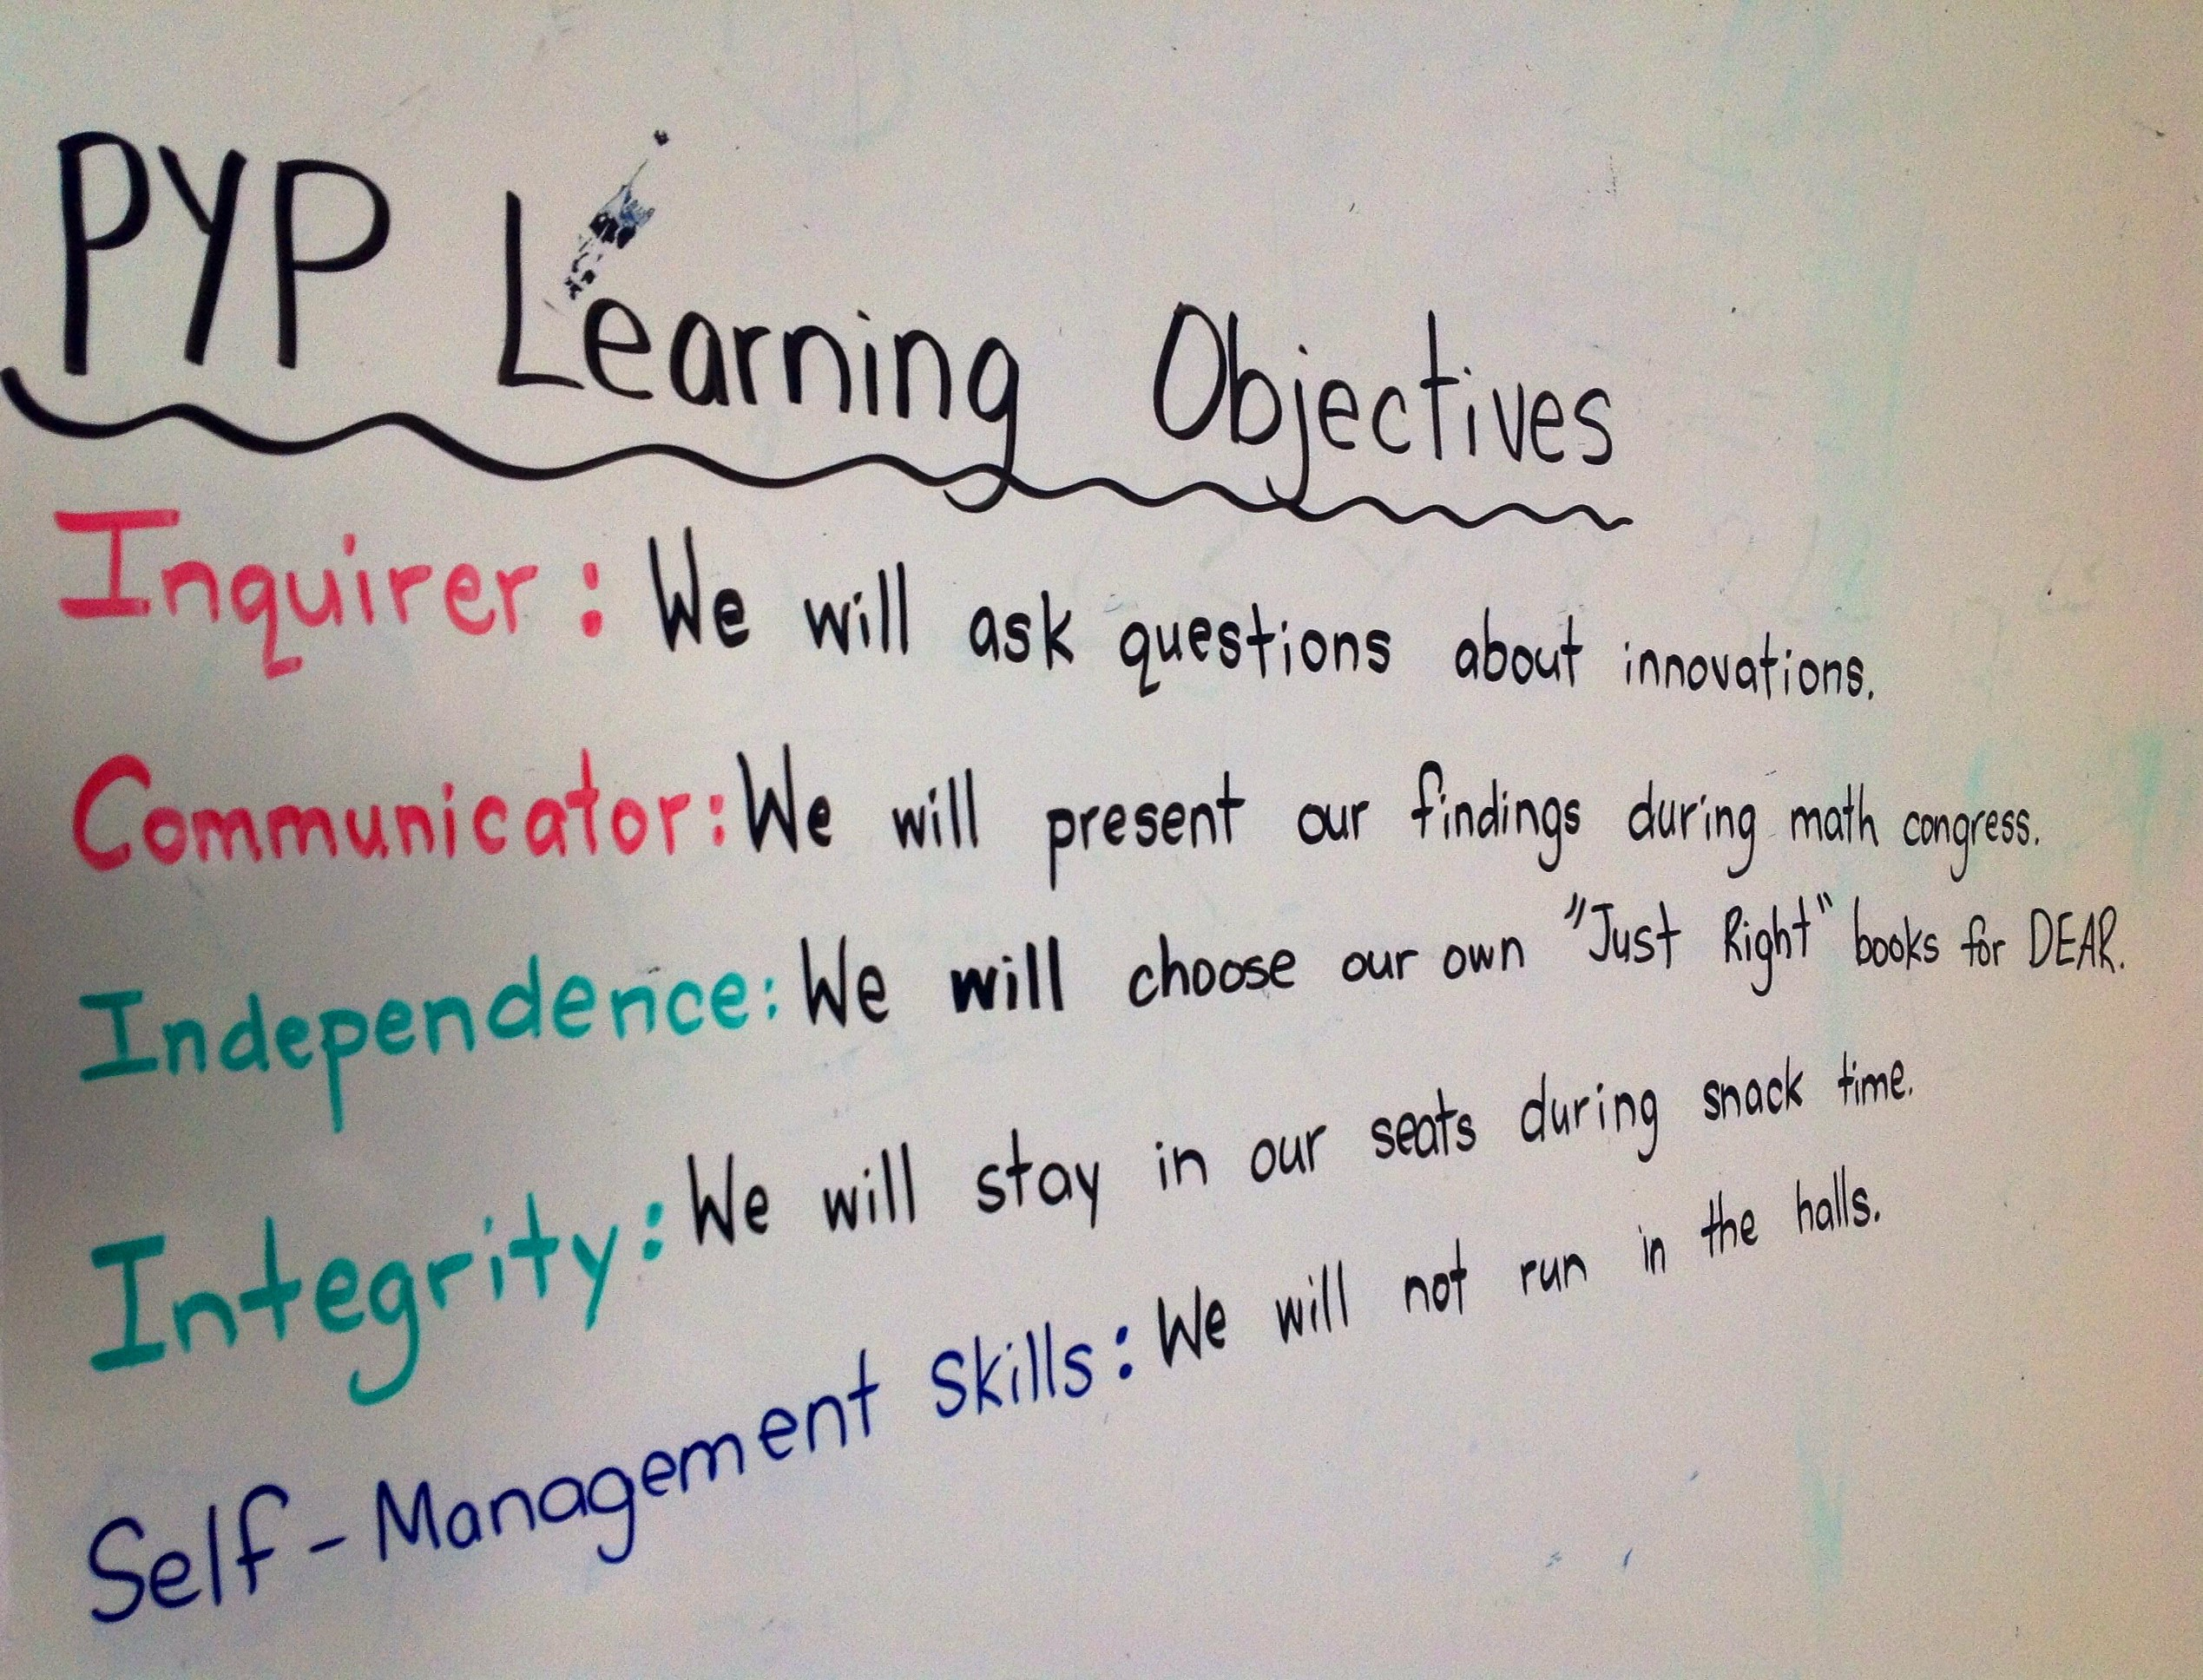 Daily Pyp Objectives An Attempt To Balance The 5 Elements